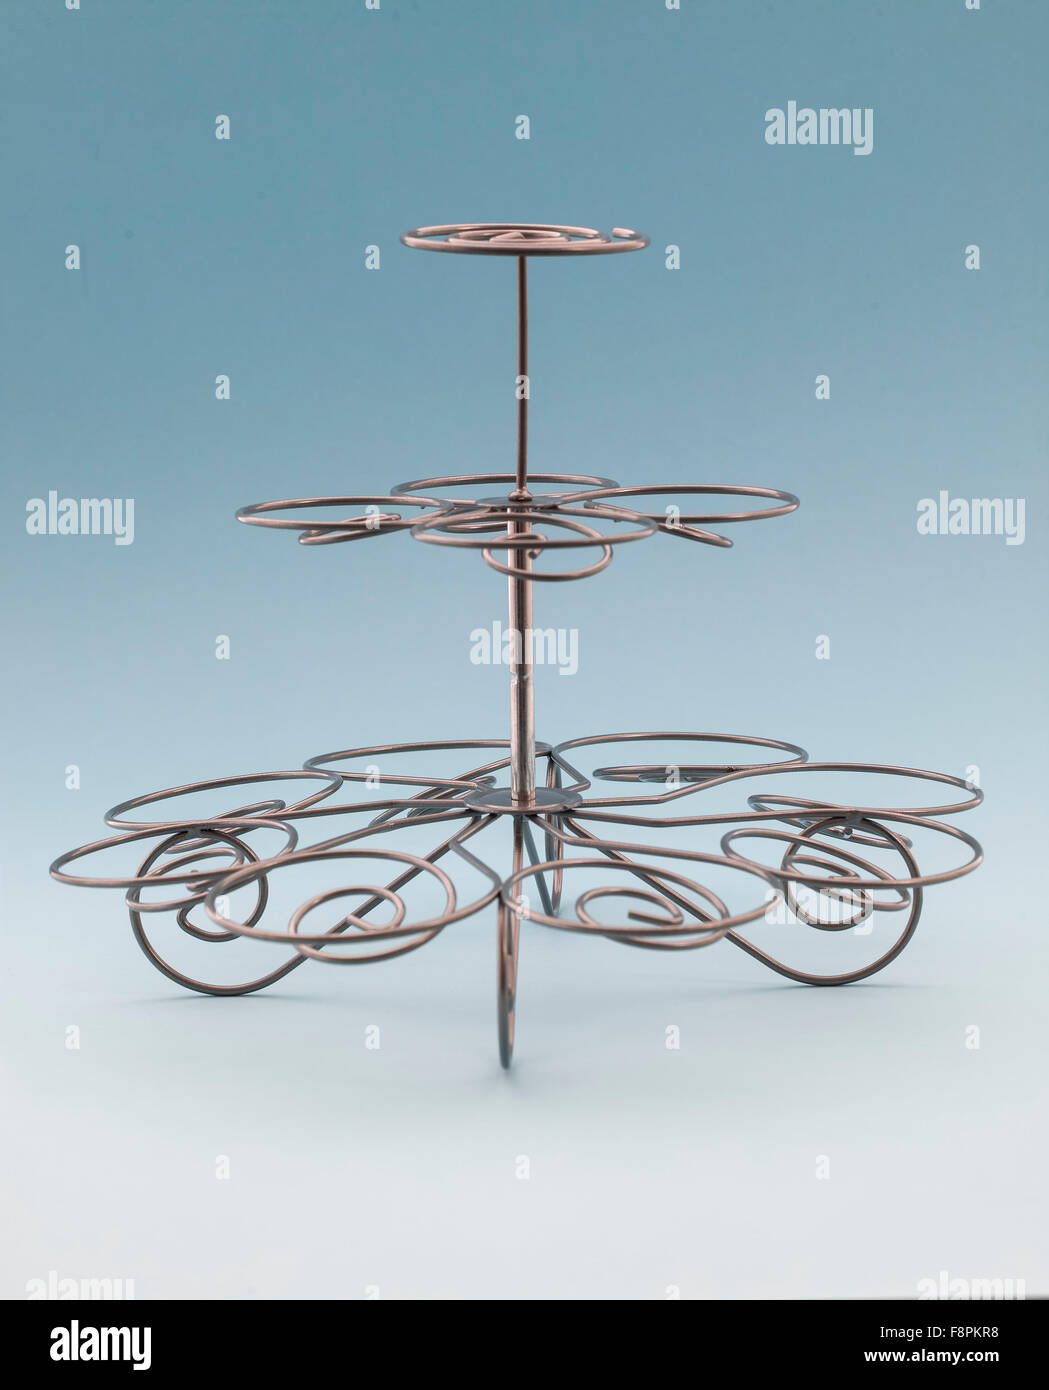 Wire Cup Cake Stand on a Light Blue Background - Stock Image